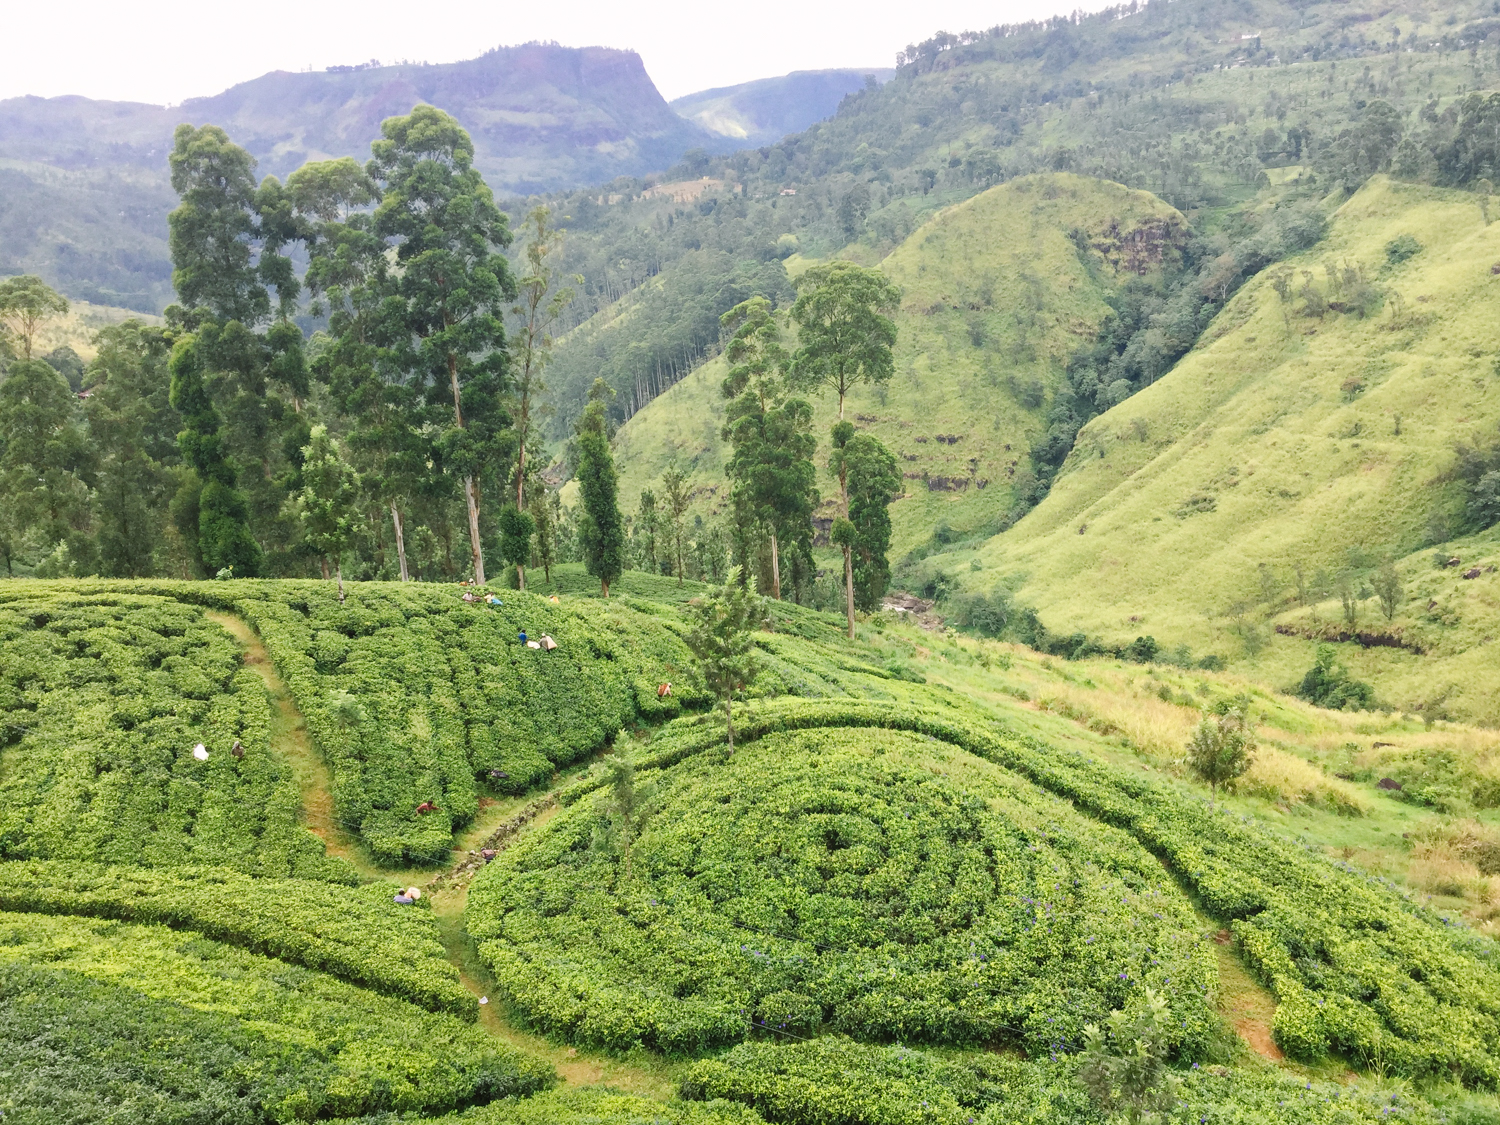 Your Bestow Tea Break is Changing A Community in Sri Lanka